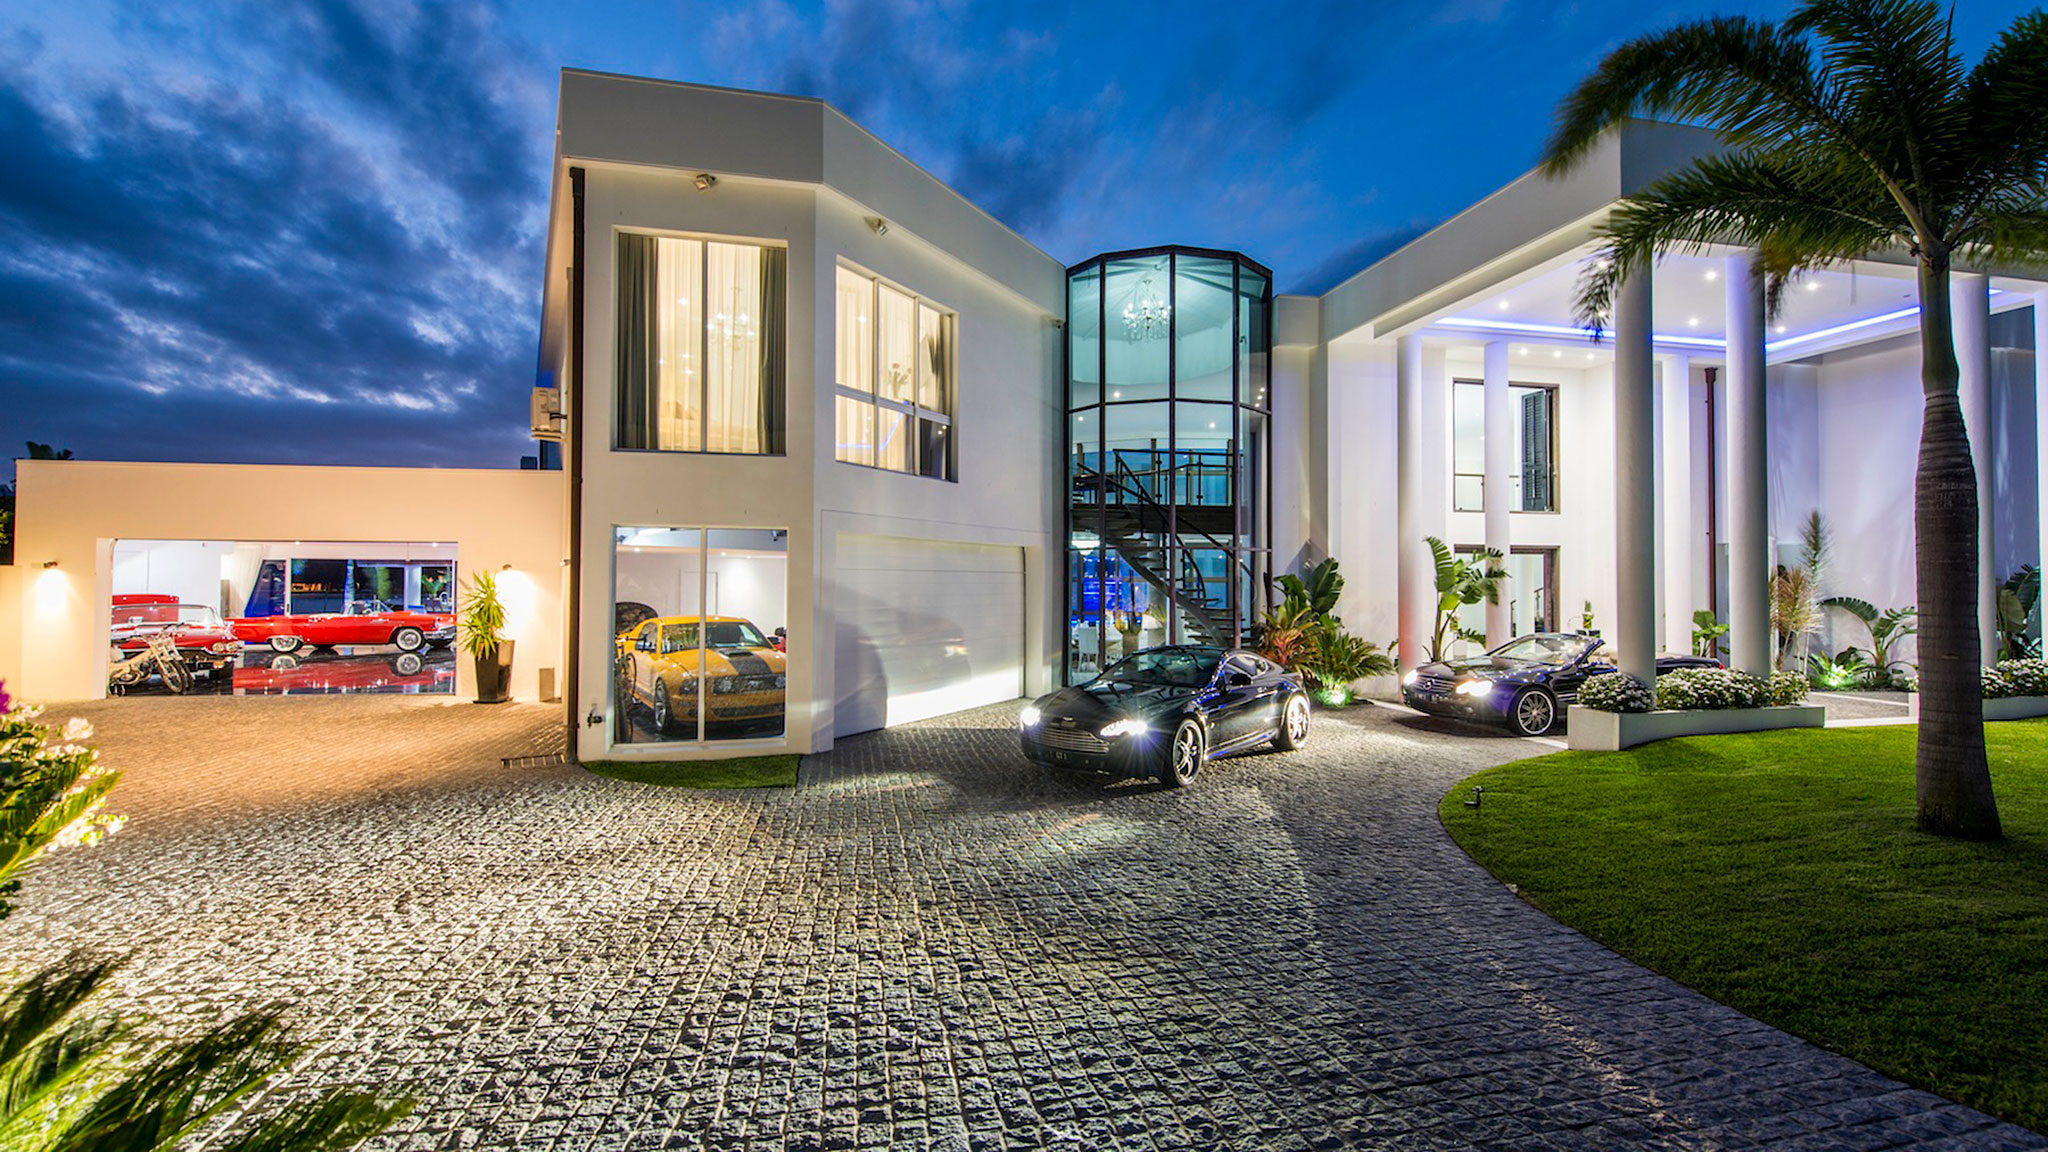 Five Houses With Super Garages For Supercars